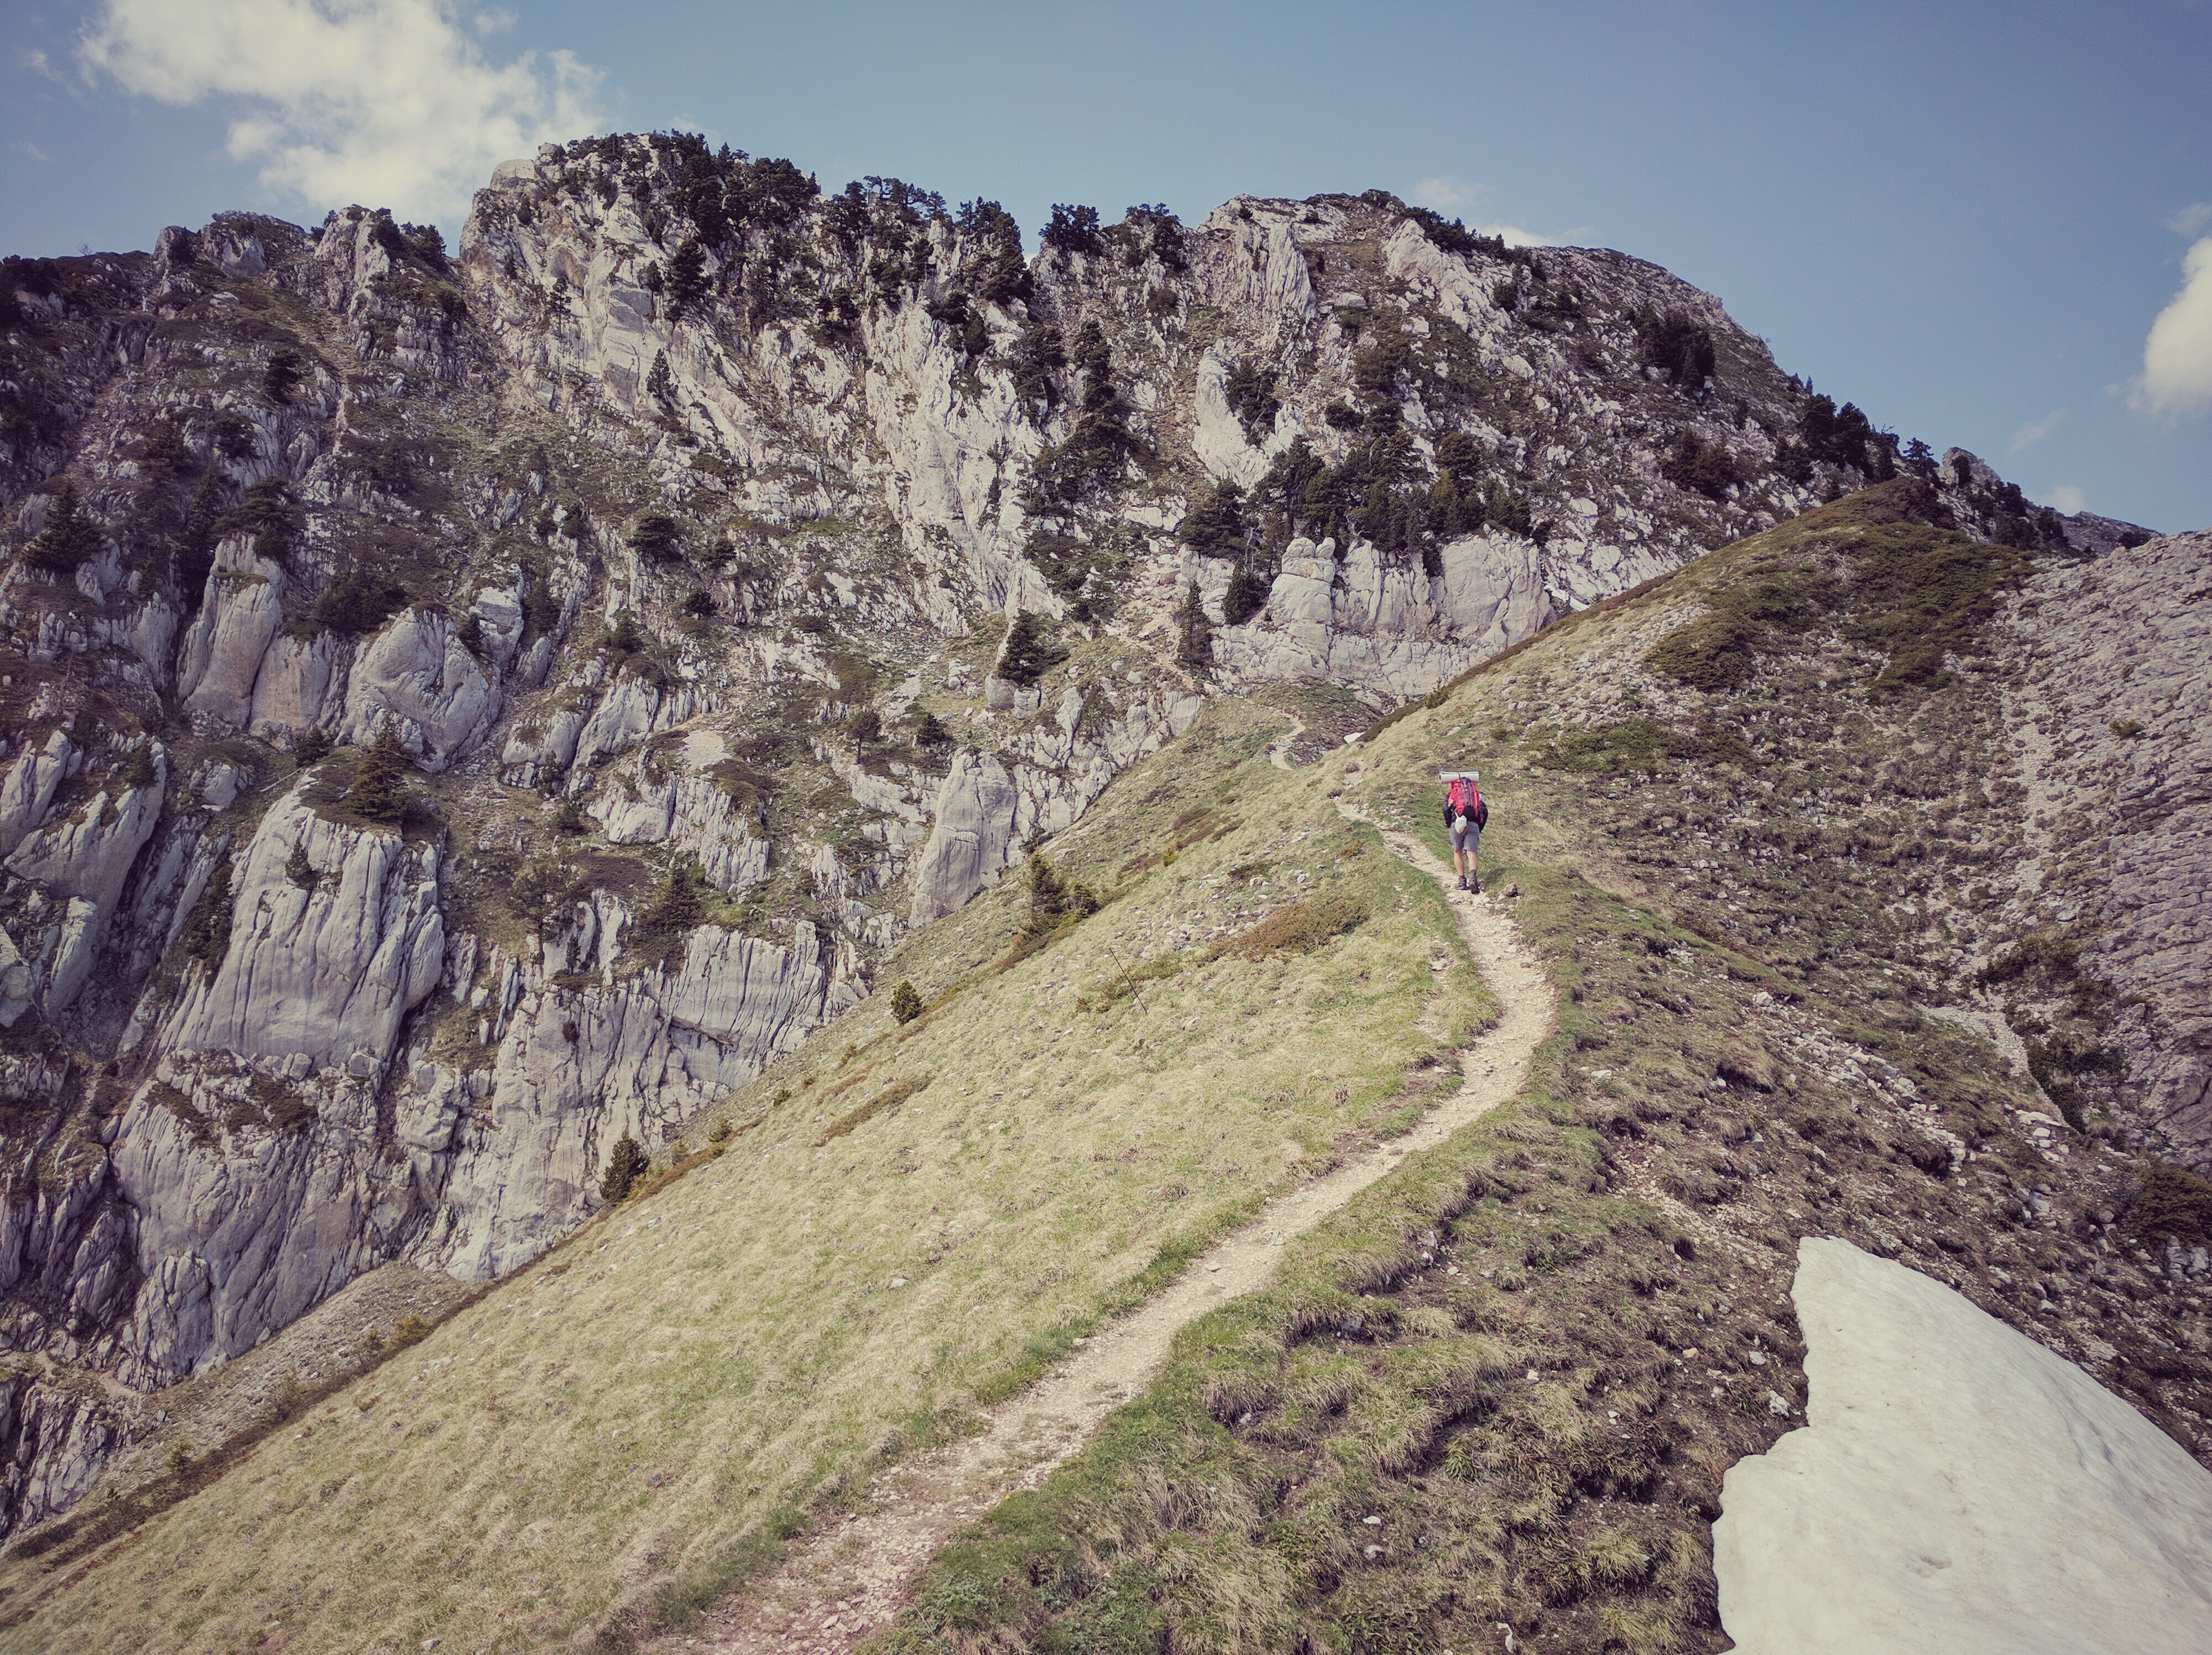 A person hiking up a steep trail along the side of a mountain in Grenoble